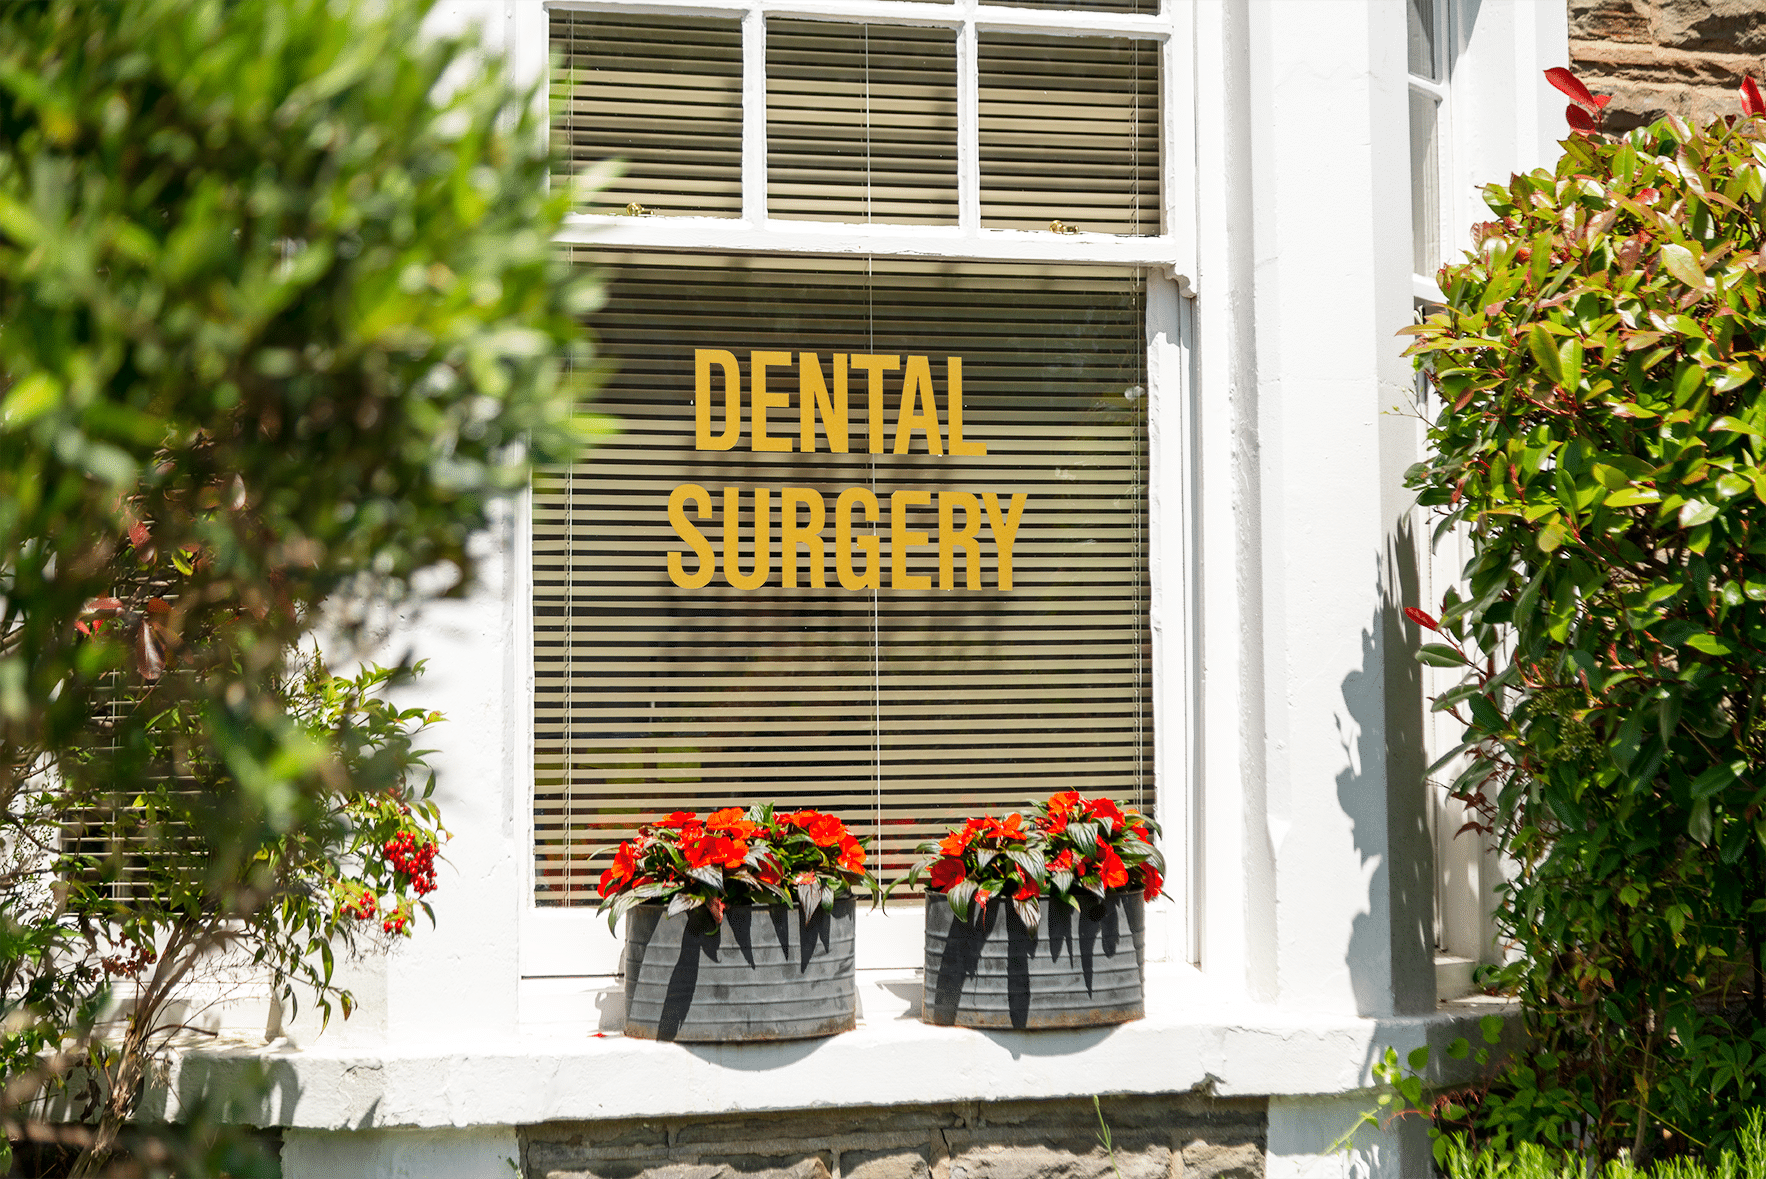 Outside View of The White's Dental Practice in Cardiff